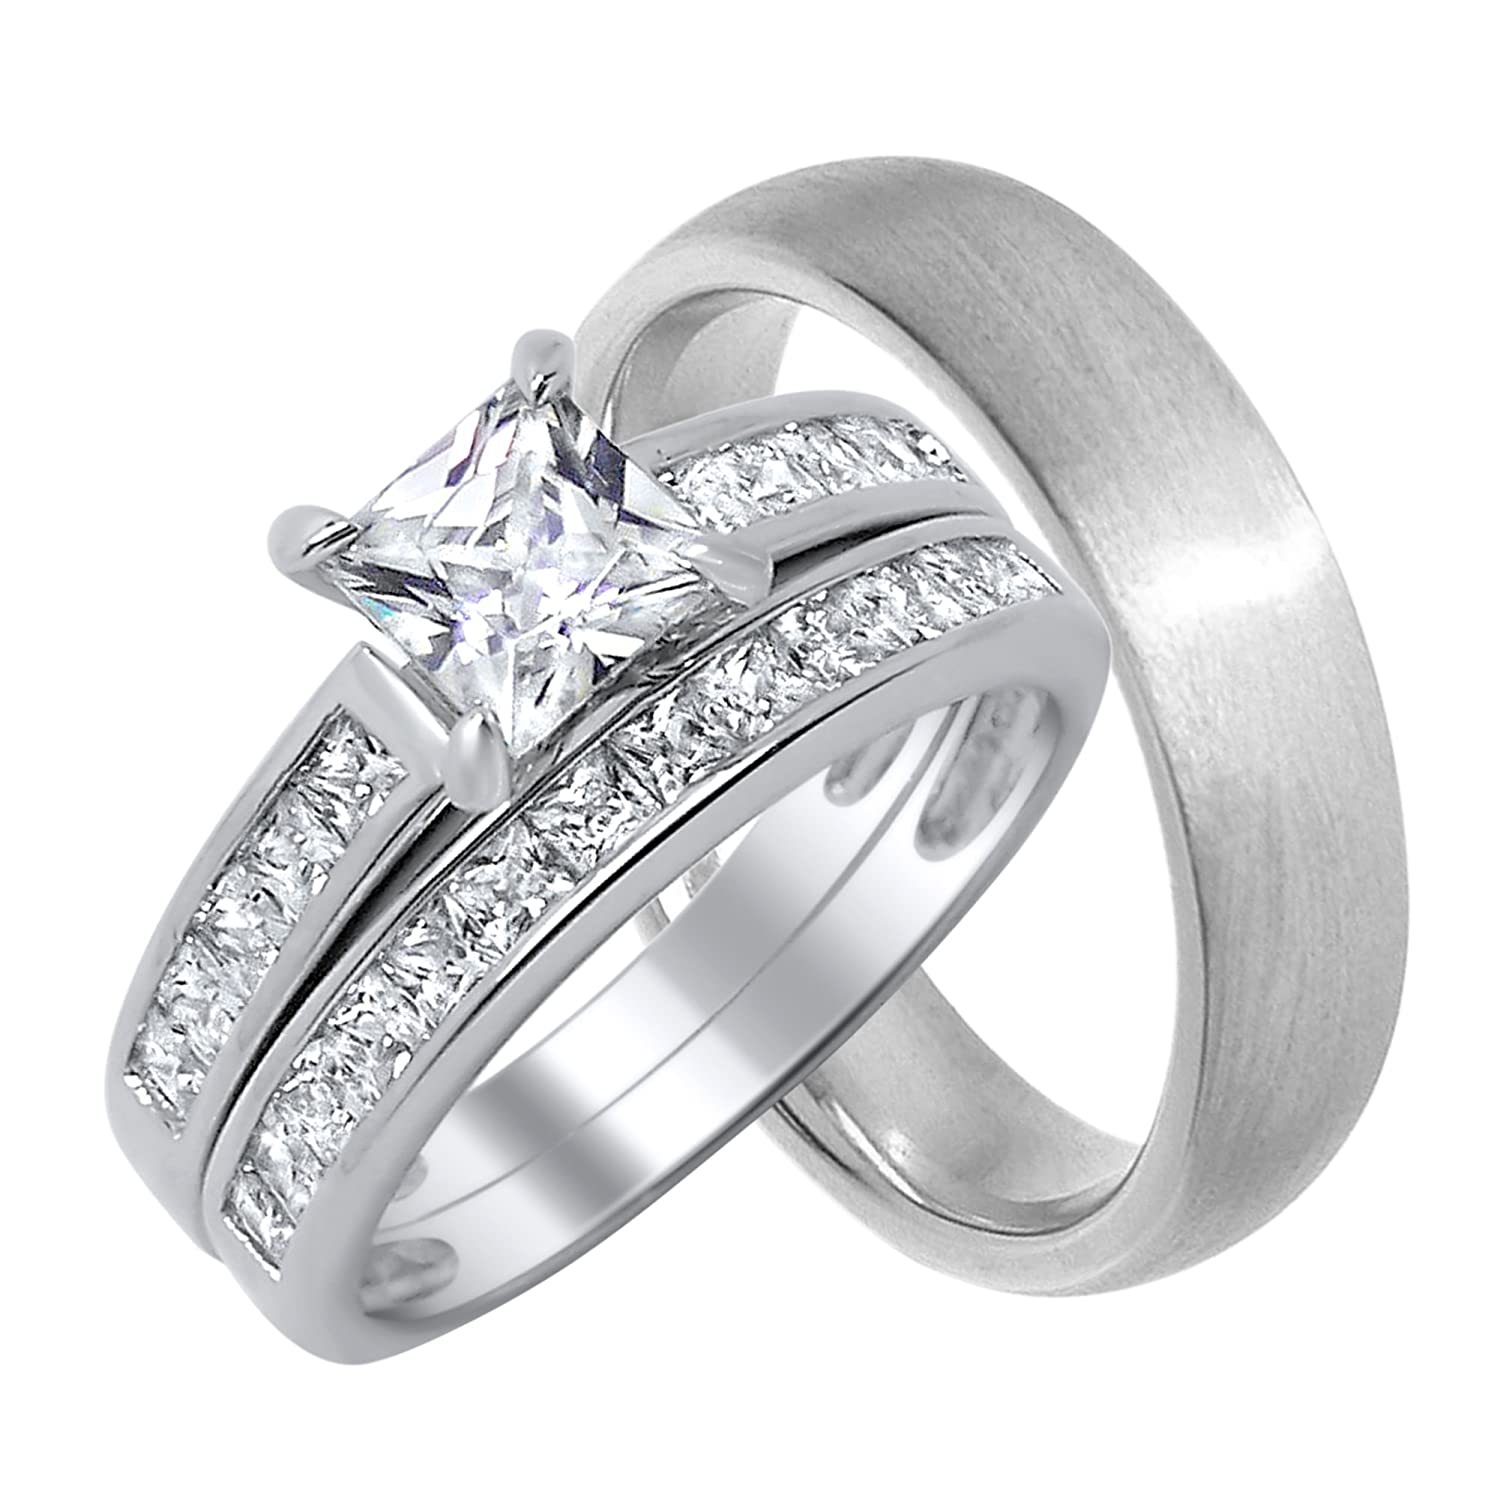 Wedding Rings Sets For Him And Her.His And Her Wedding Ring Set Matching Bands For Him And Her Choose Sizes